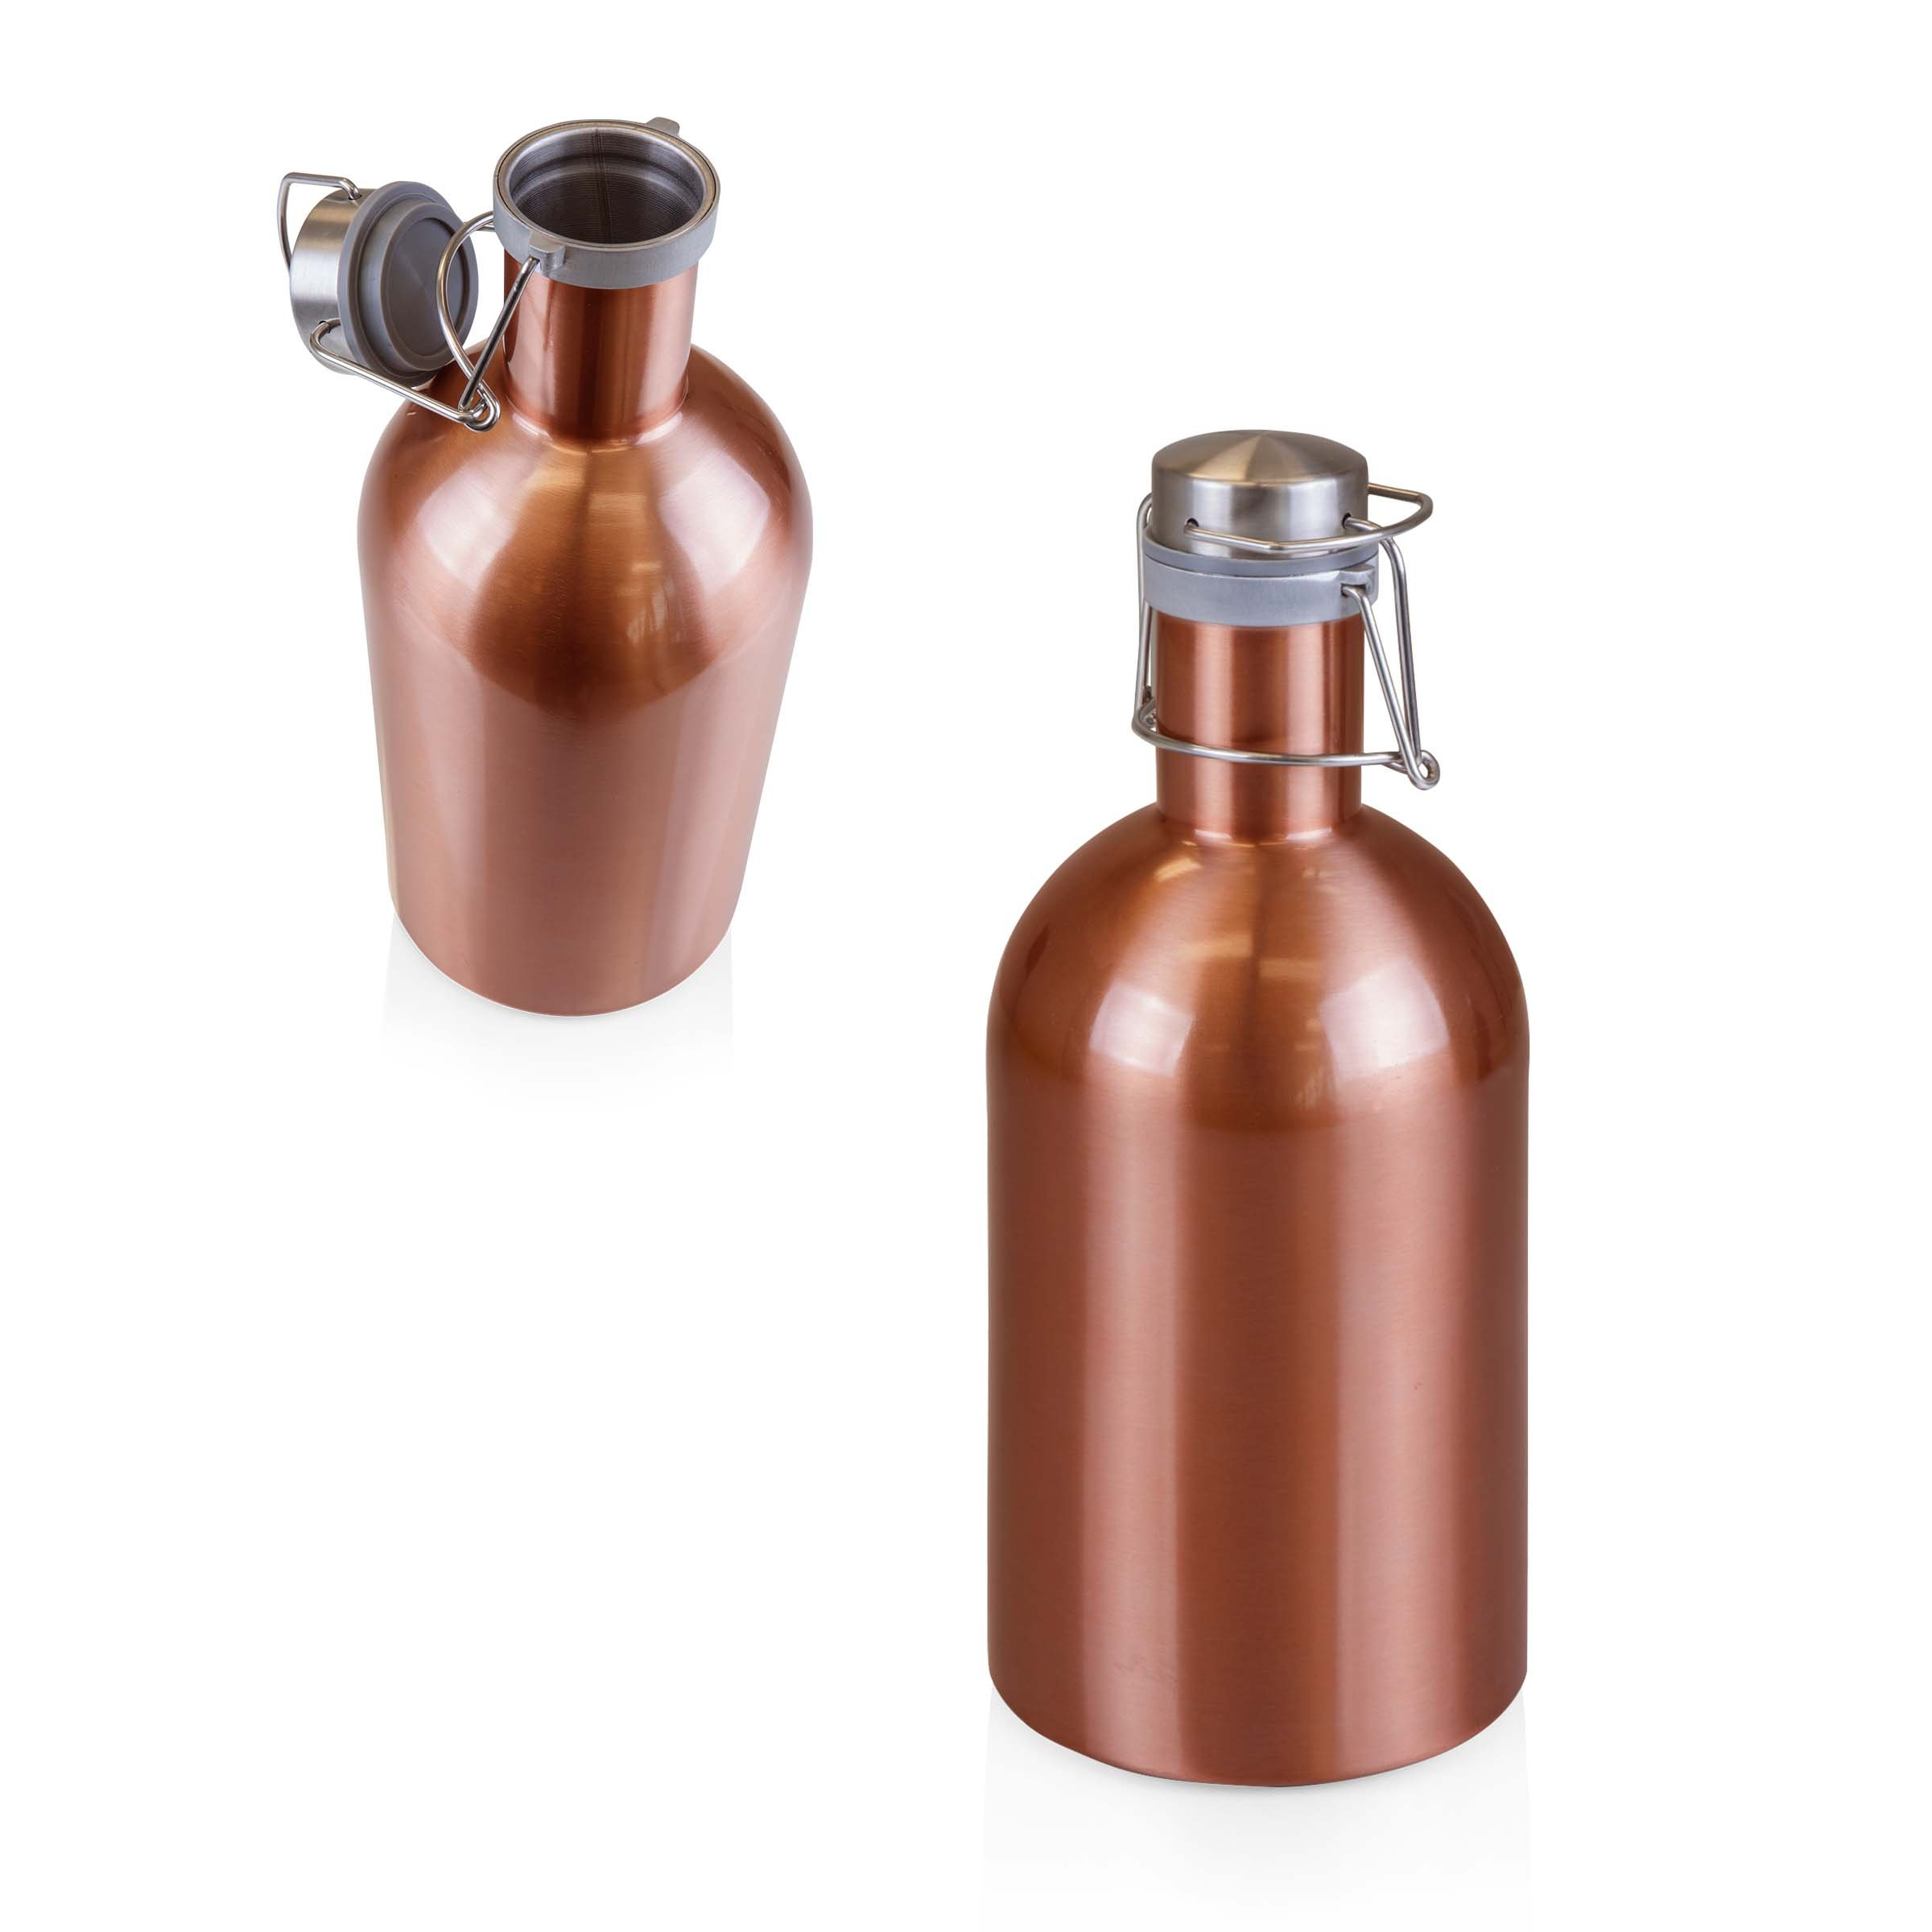 Stainless Steel 64-Ounce Beer Growler by LEGACY - a Picnic Time Brand by LEGACY - a Picnic Time Brand (Image #3)